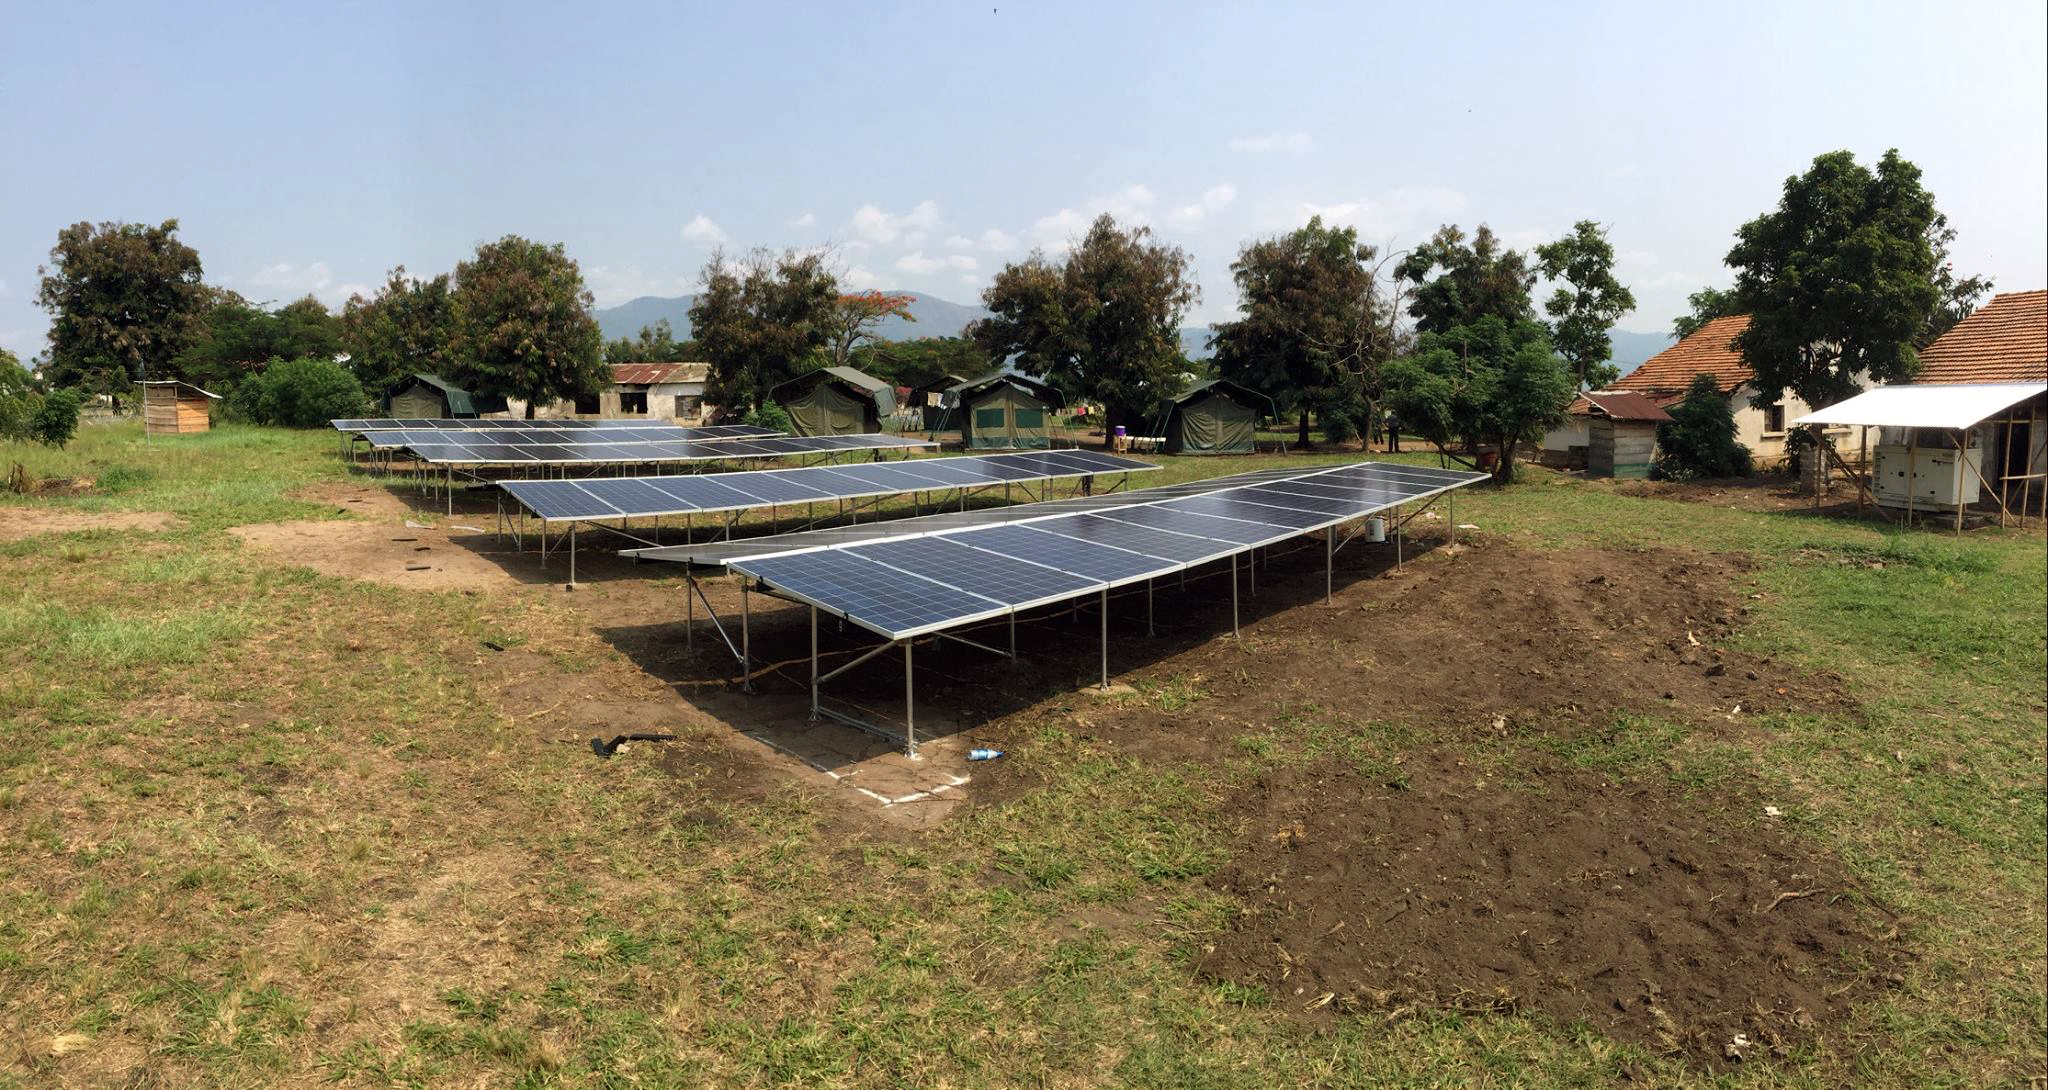 Solar photovoltaic array at Rwindi Ranger Station (Photo courtesy of Joe O'Connor)